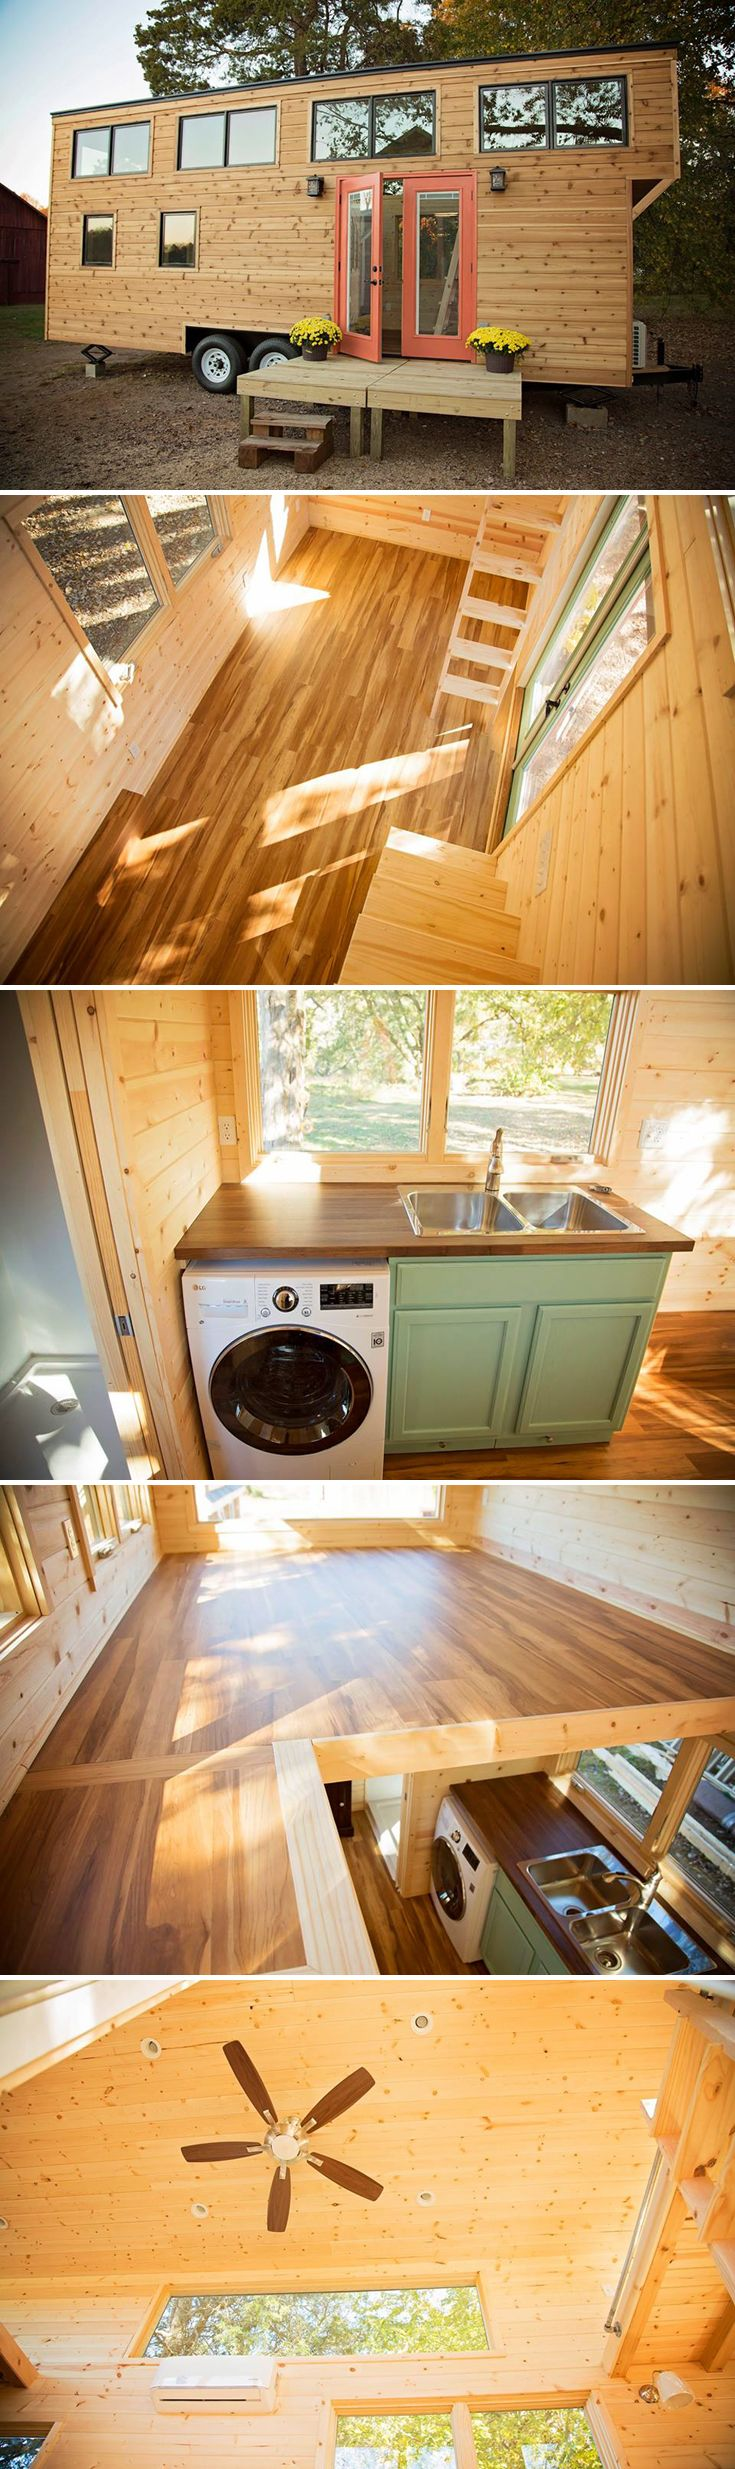 Peponi By Perch Amp Nest Tiny Houses Tiny House On